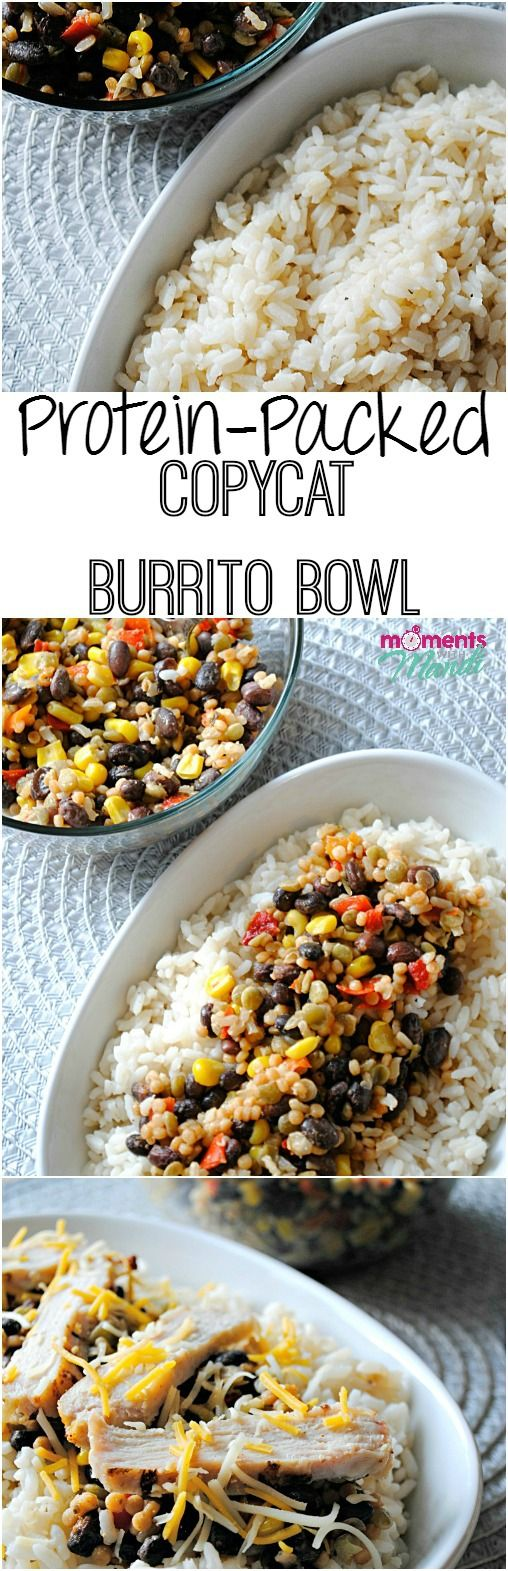 Beat the summer heat and avoid making the kitchen hot with this microwave-ready proten packed Copycat Burrito Bowl featuring Tyson Grilled & Ready Chicken Breast Fillets and Bird's Eye Steamfresh Protein Blends